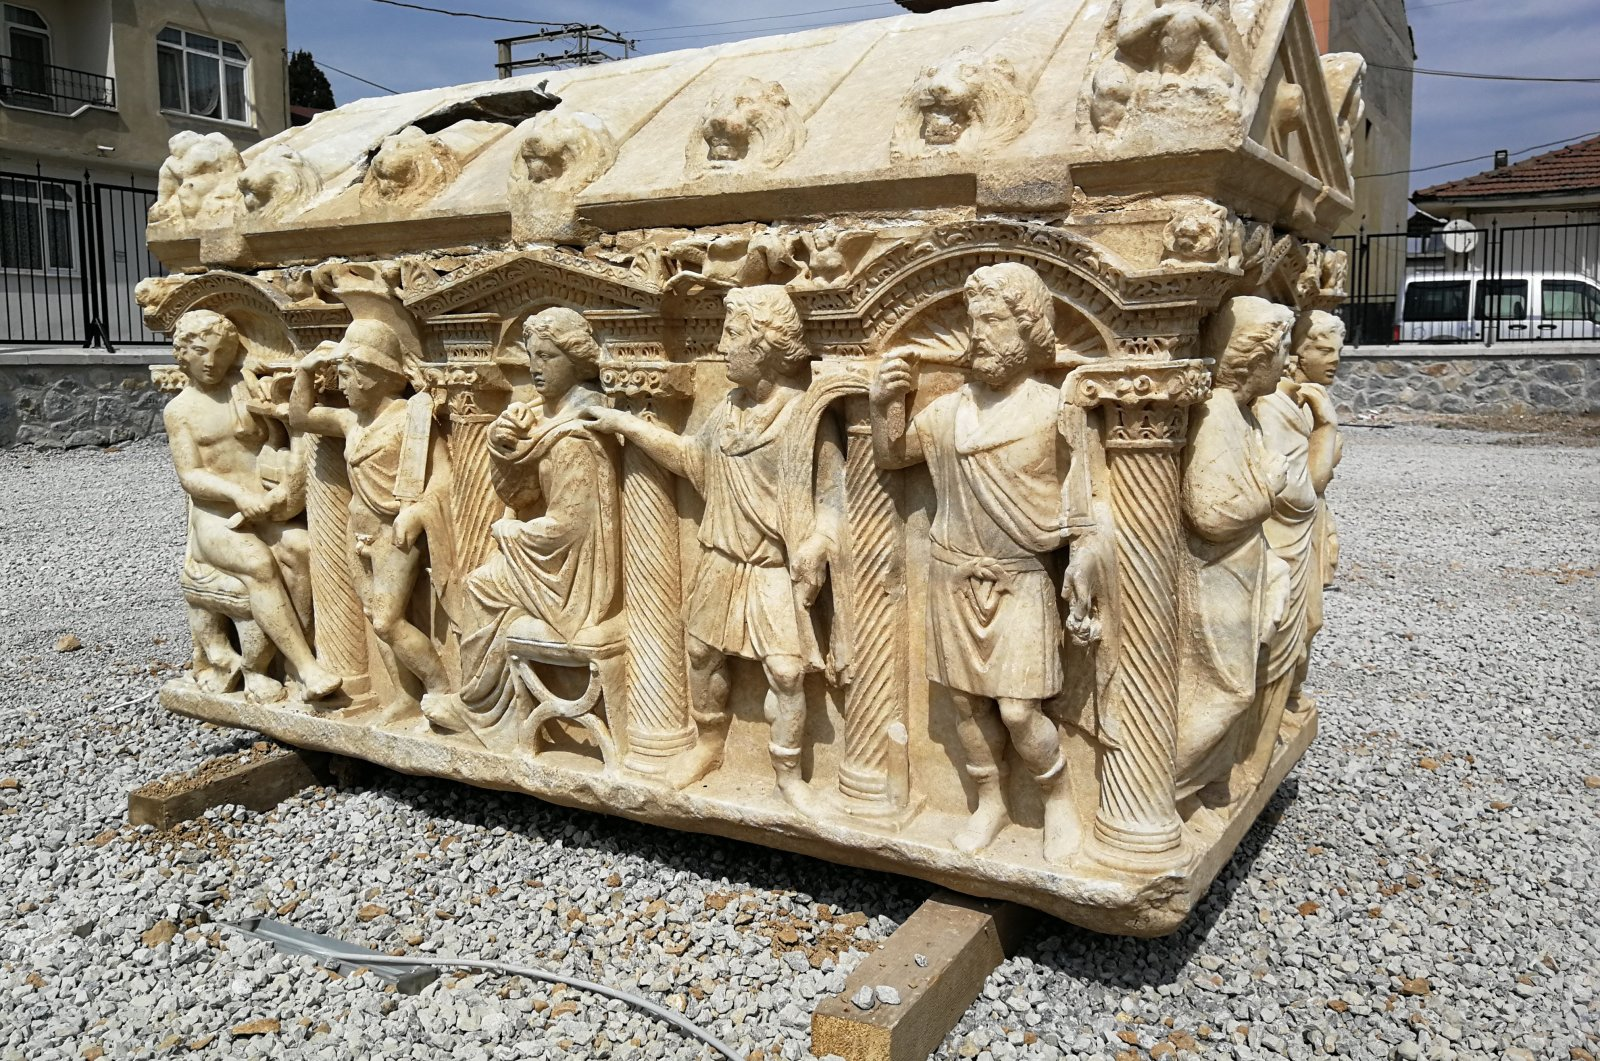 The sarcophagus was found in an olive field in Bursa province's Iznik district in 2015. (İHA PHOTO)